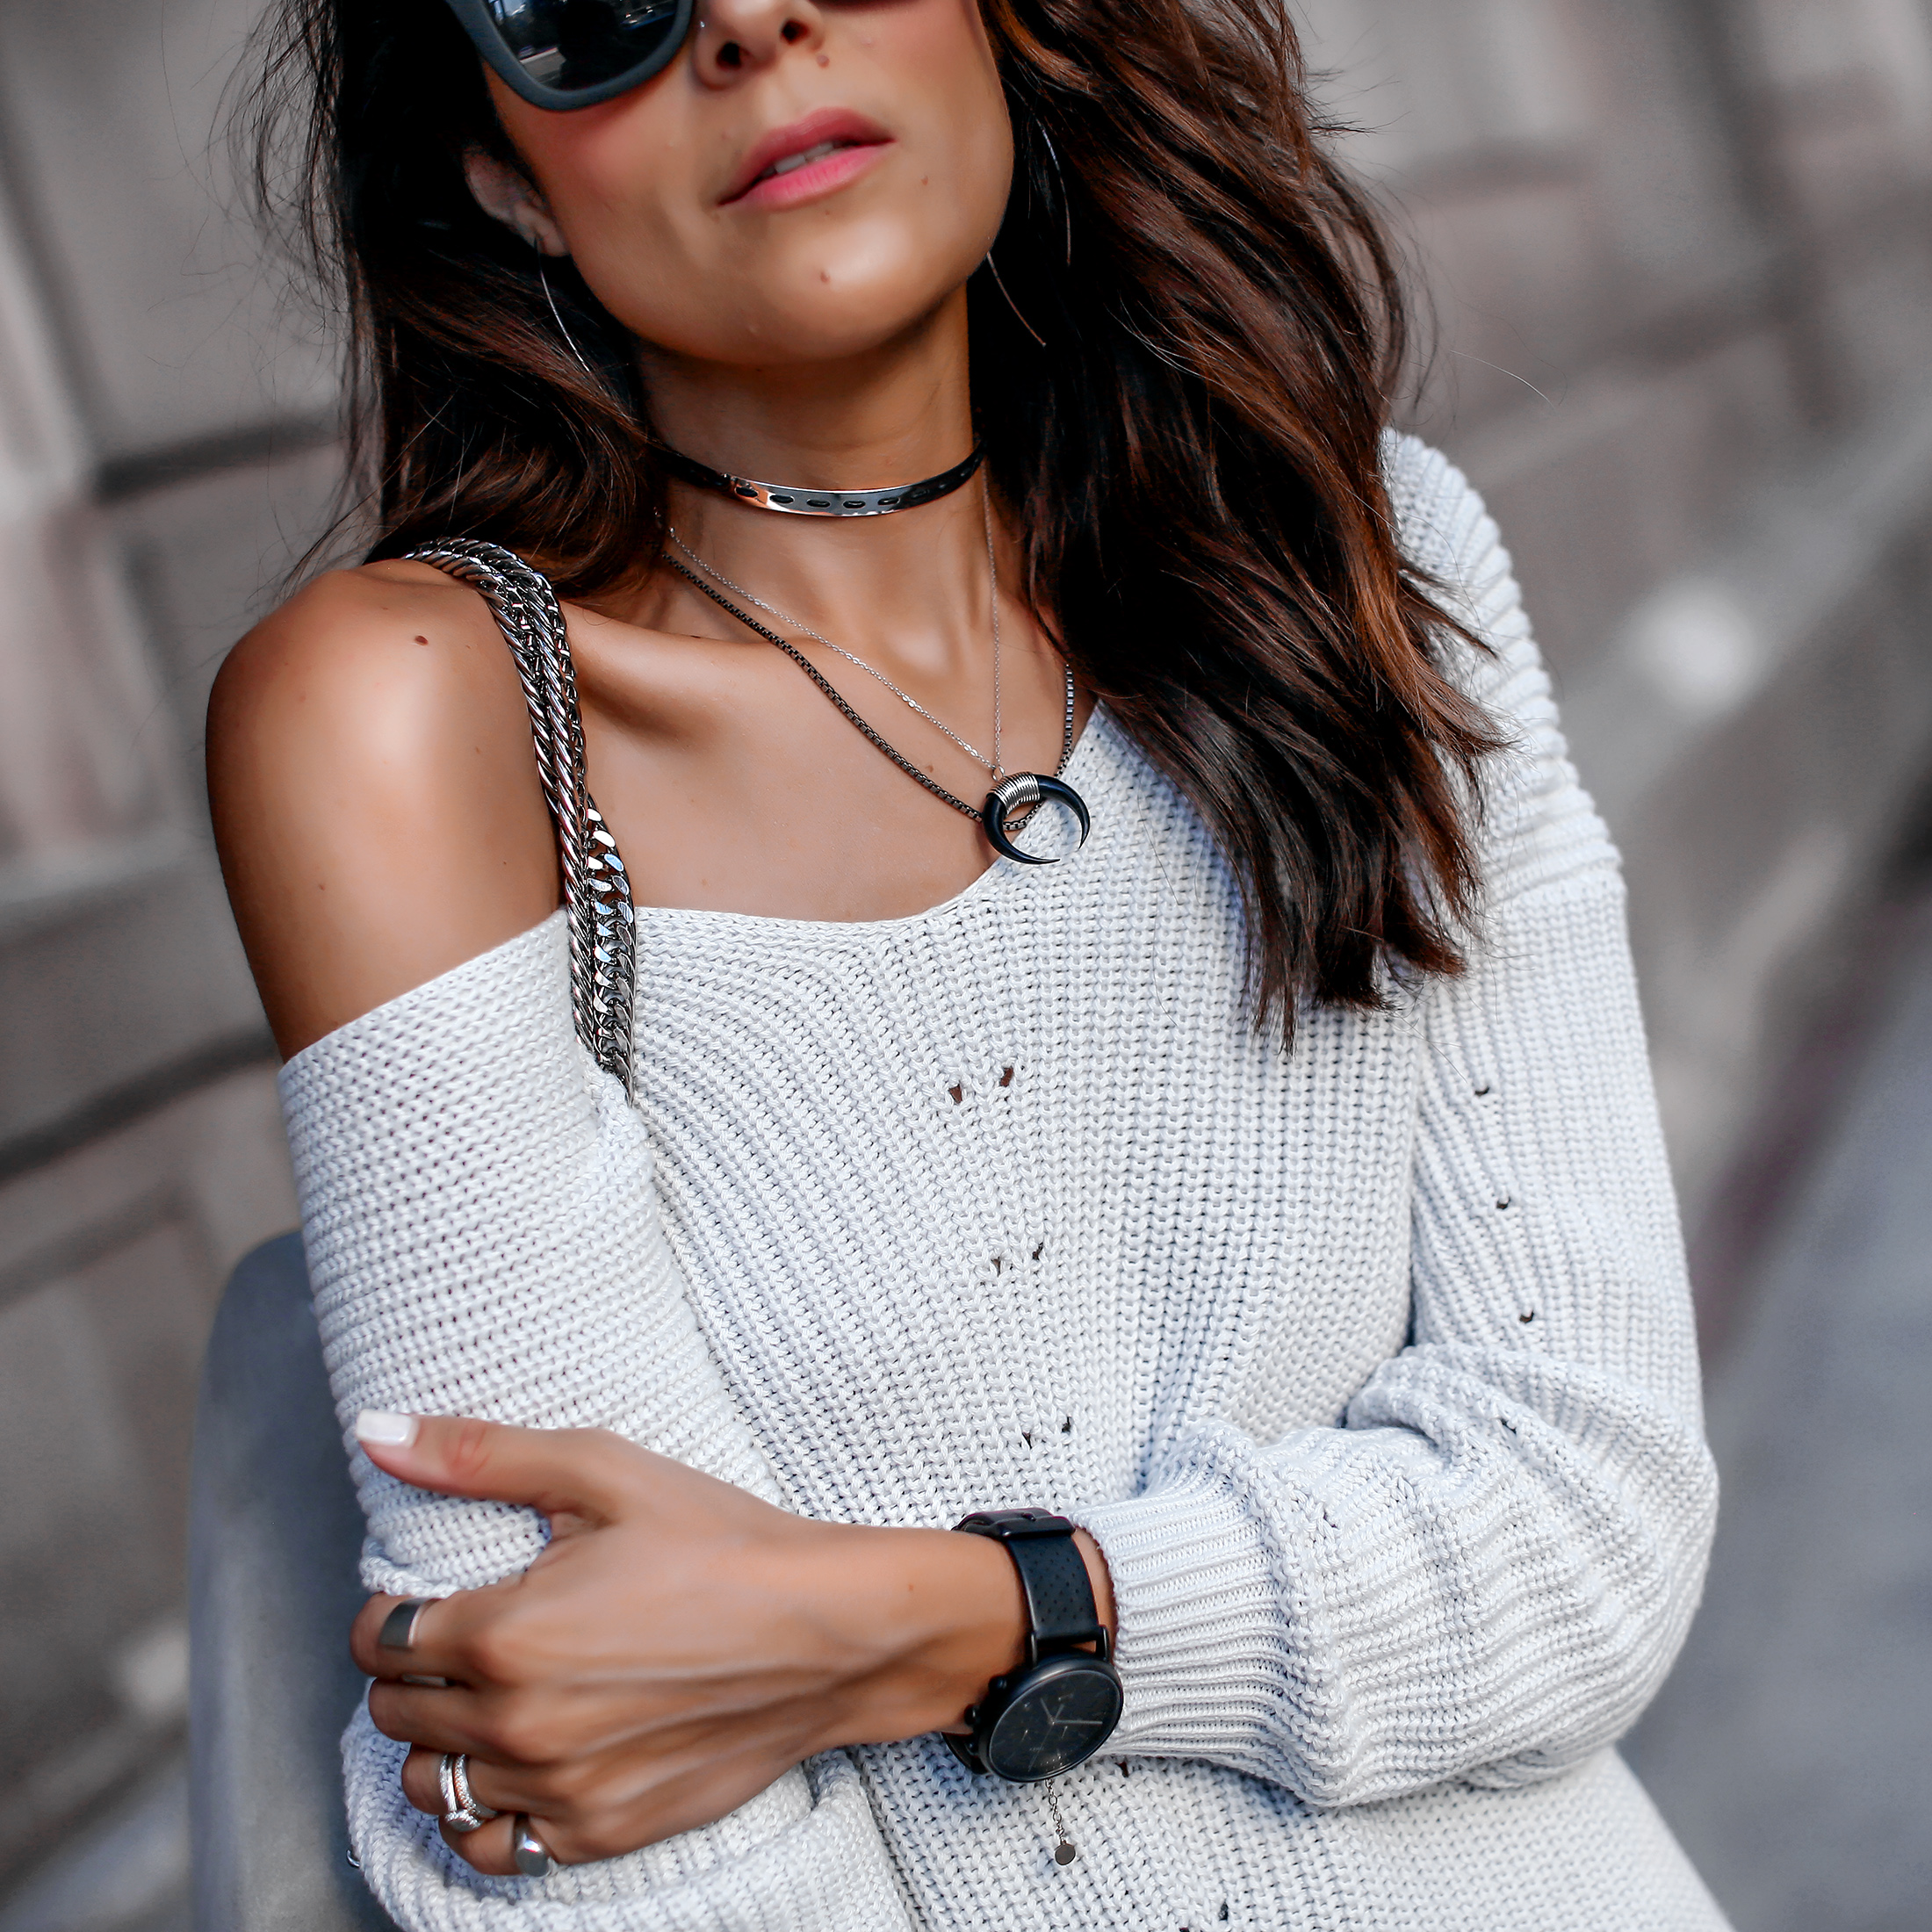 Lucys Whims Brunnette Woman Wearing Off the Shoulder 525 Sweater DSTLD Ripped Jeans Chloe Boots Agneel Shoulder Bag.jpg